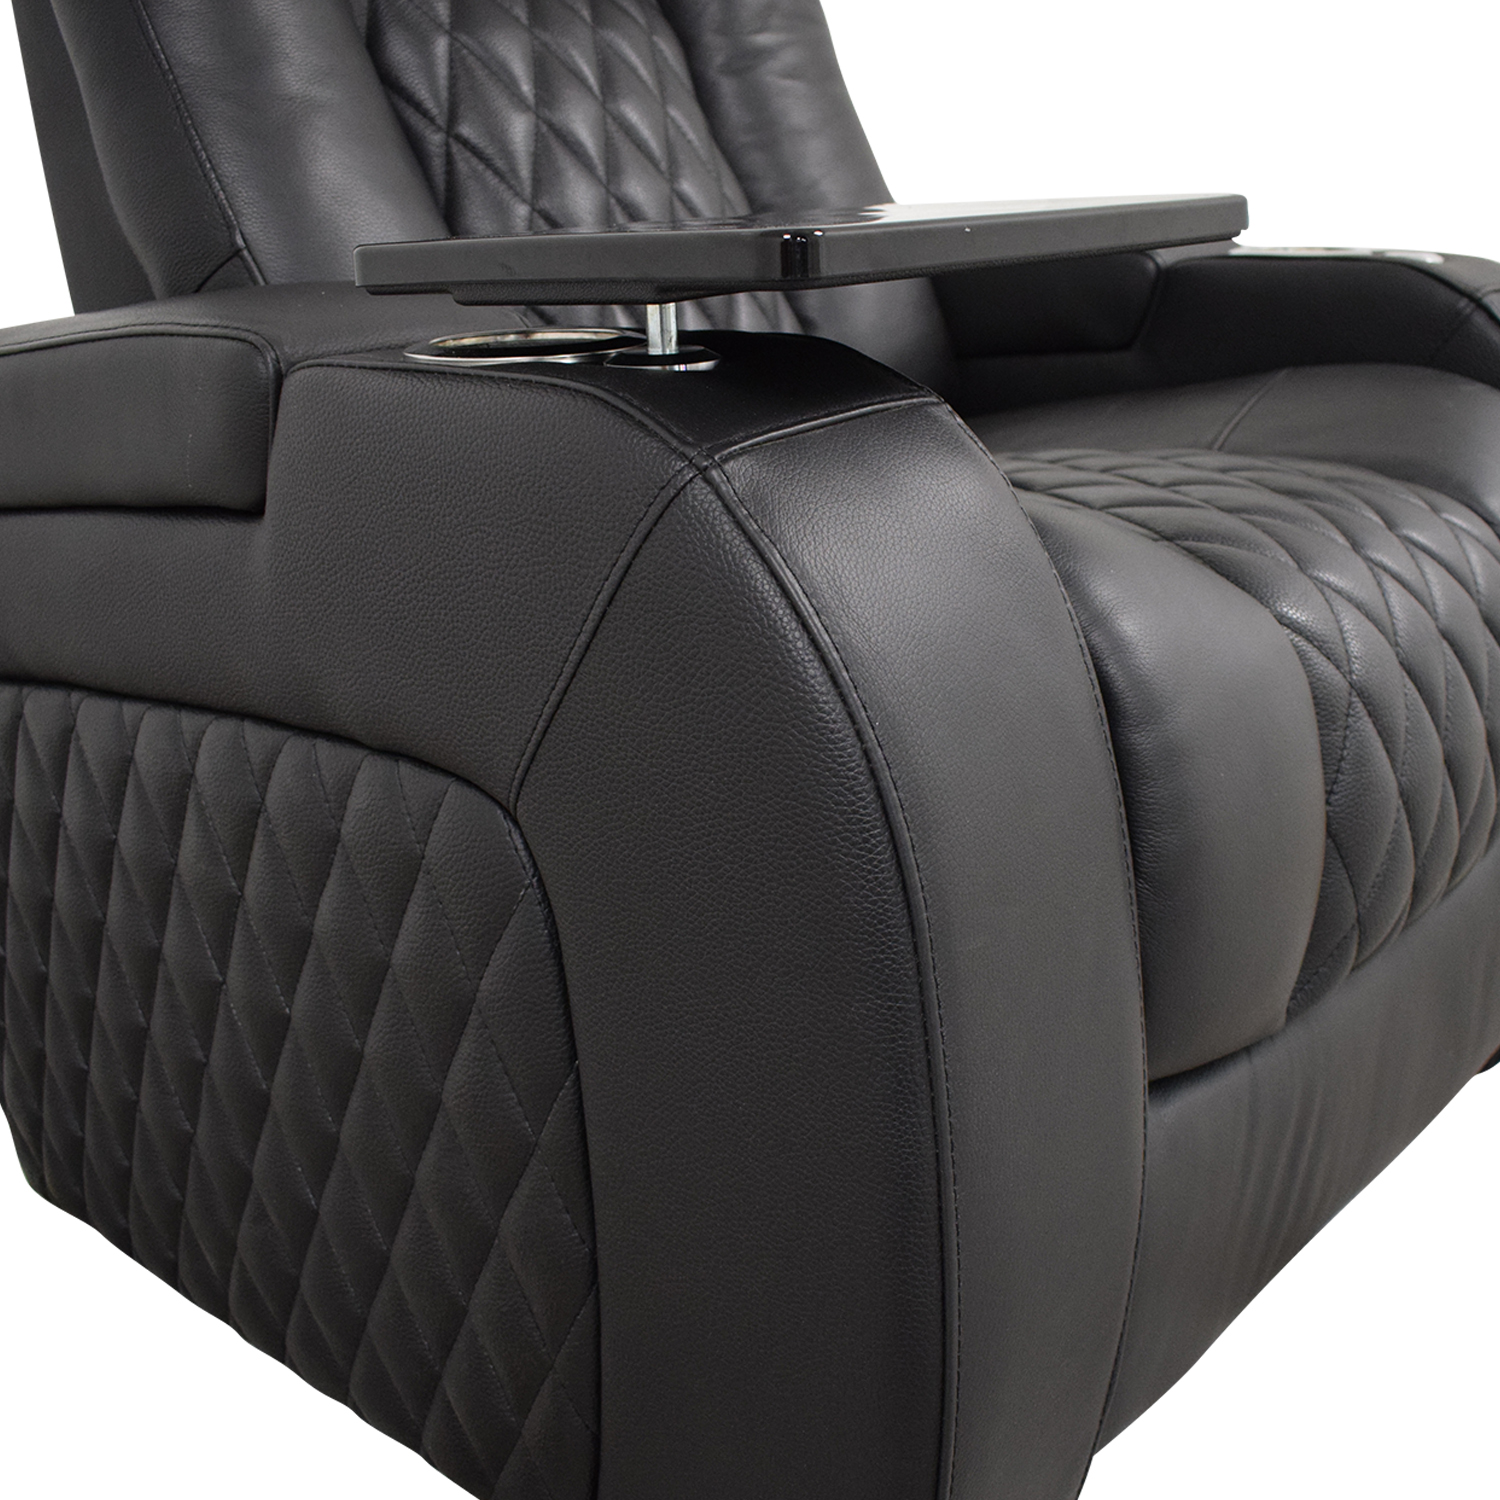 Seatcraft Seatcraft Diamante Home Theater Seating Leather Power Recliner pa